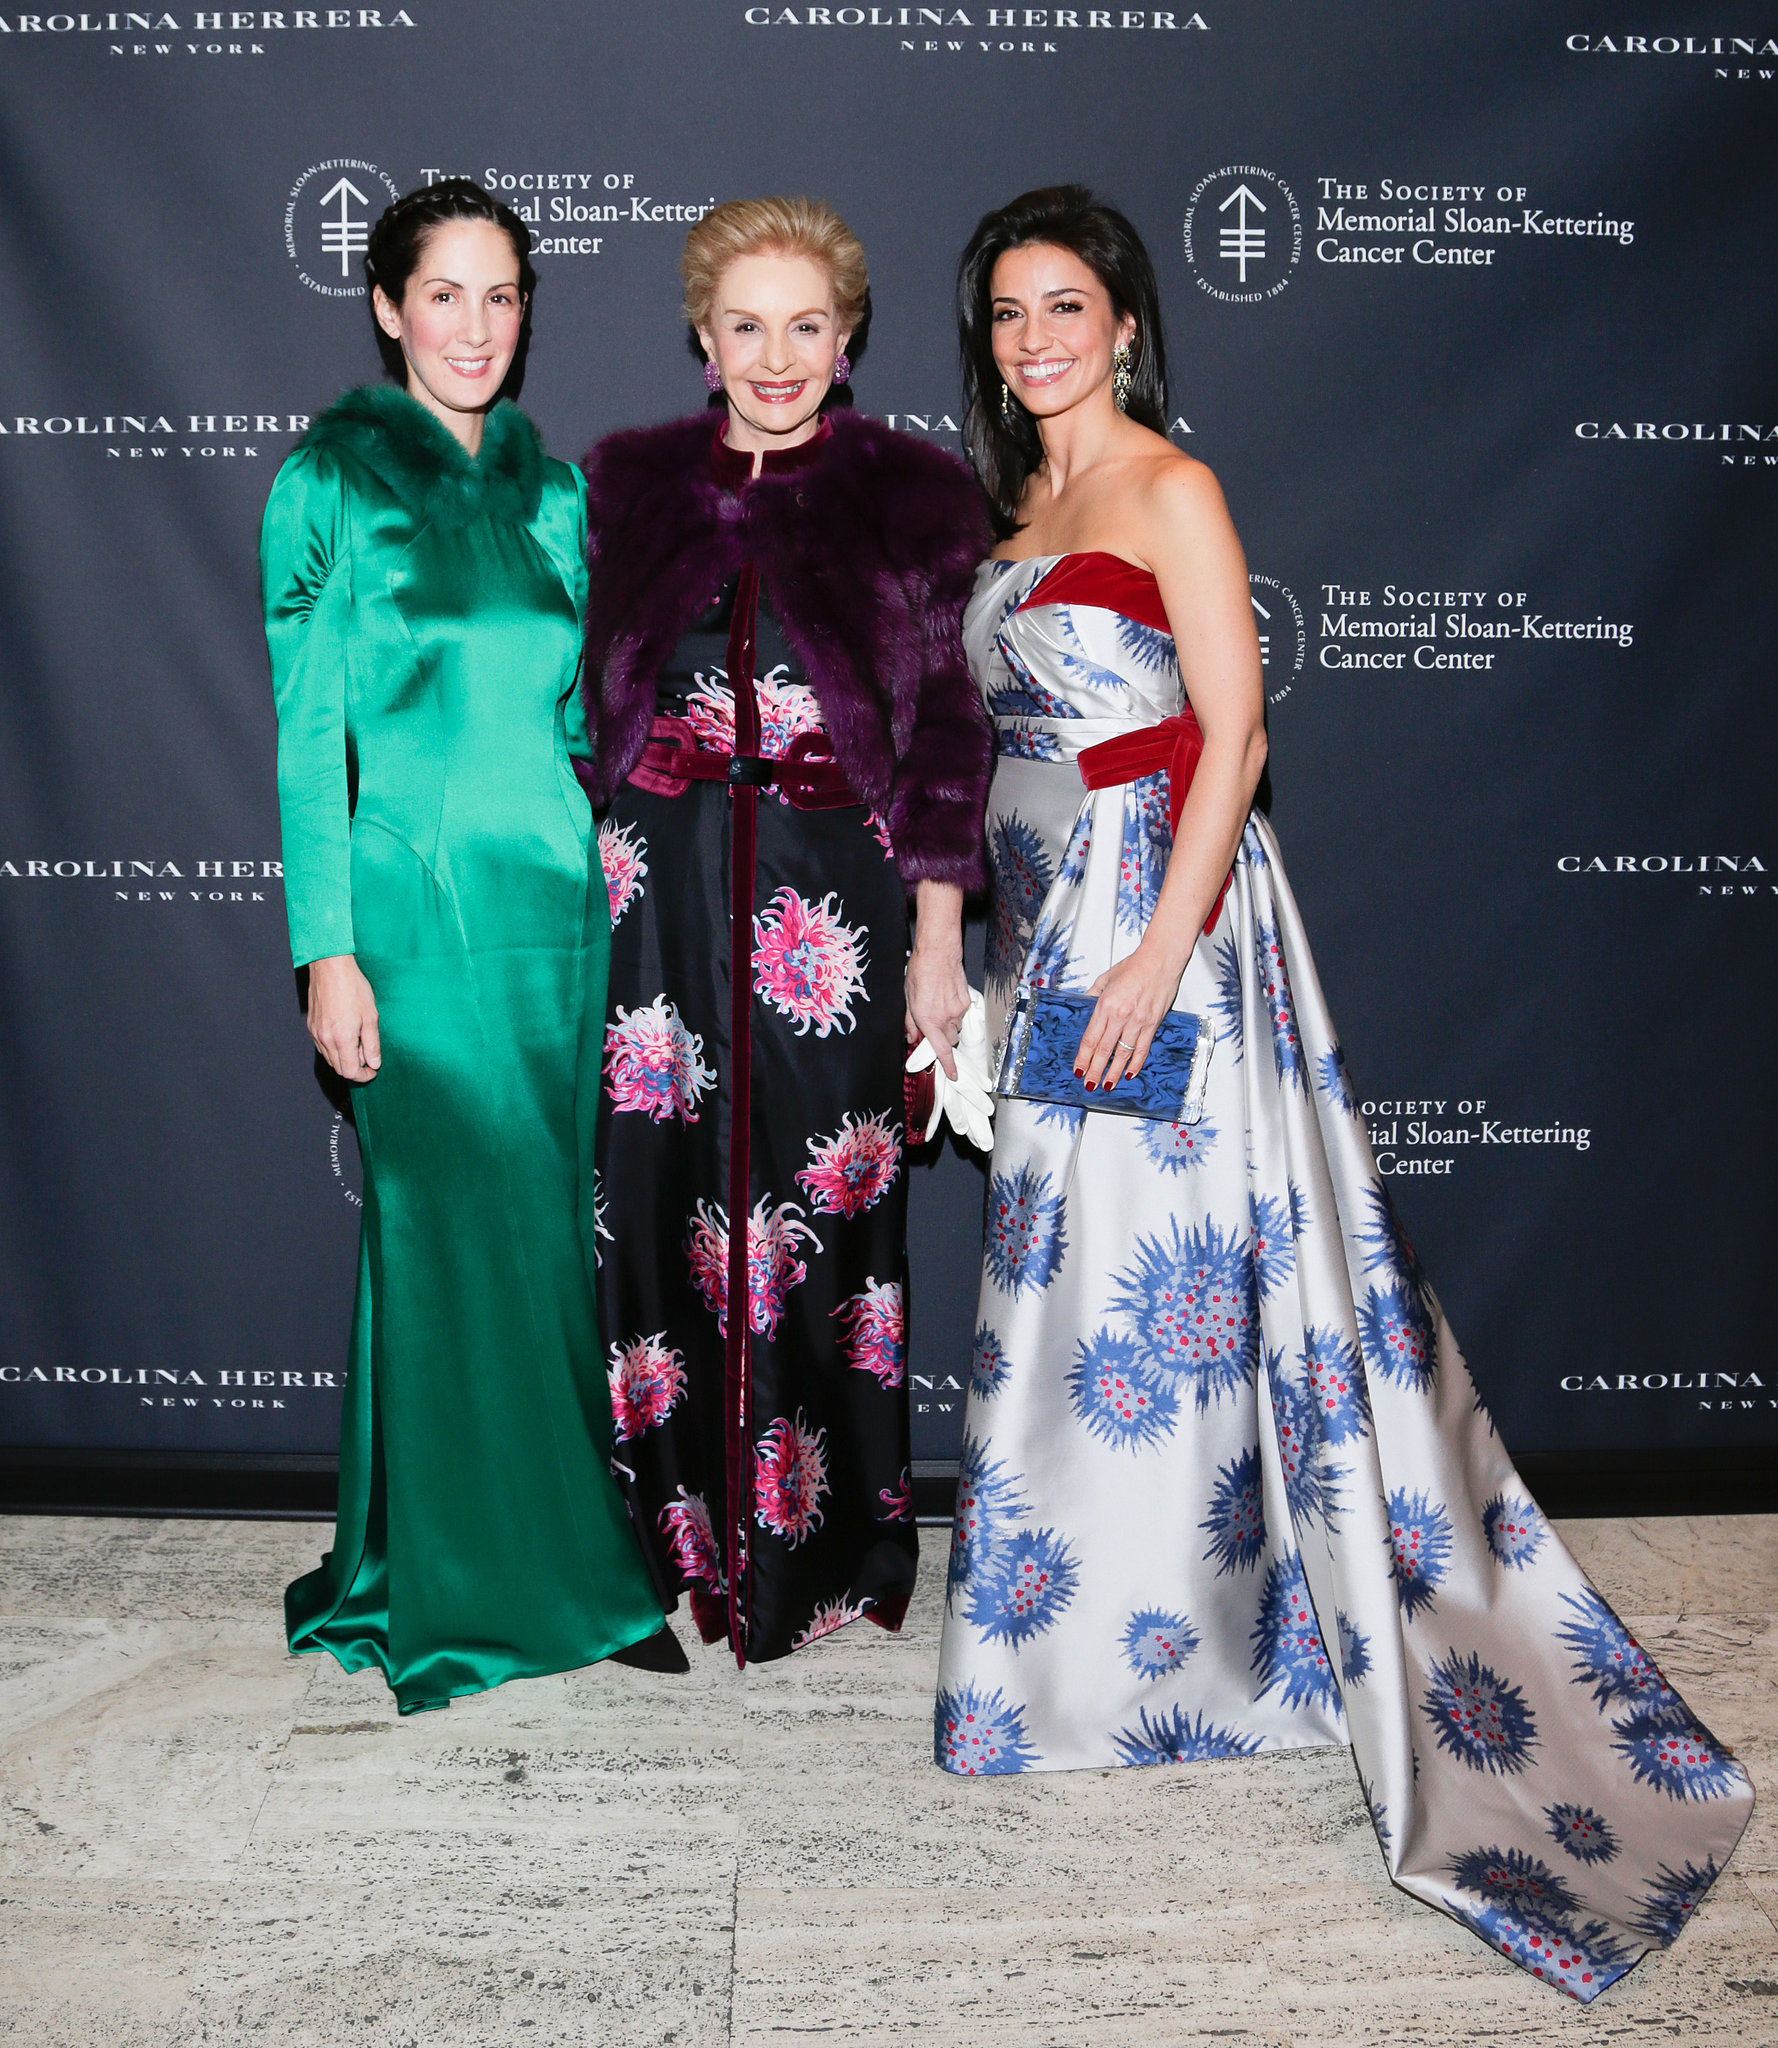 Patricia Lansing, Carolina Herrera, and Shoshanna Gruss in Carolina Herrera at The Society of Memorial Sloan-Kettering Cancer Center's Fall Party.